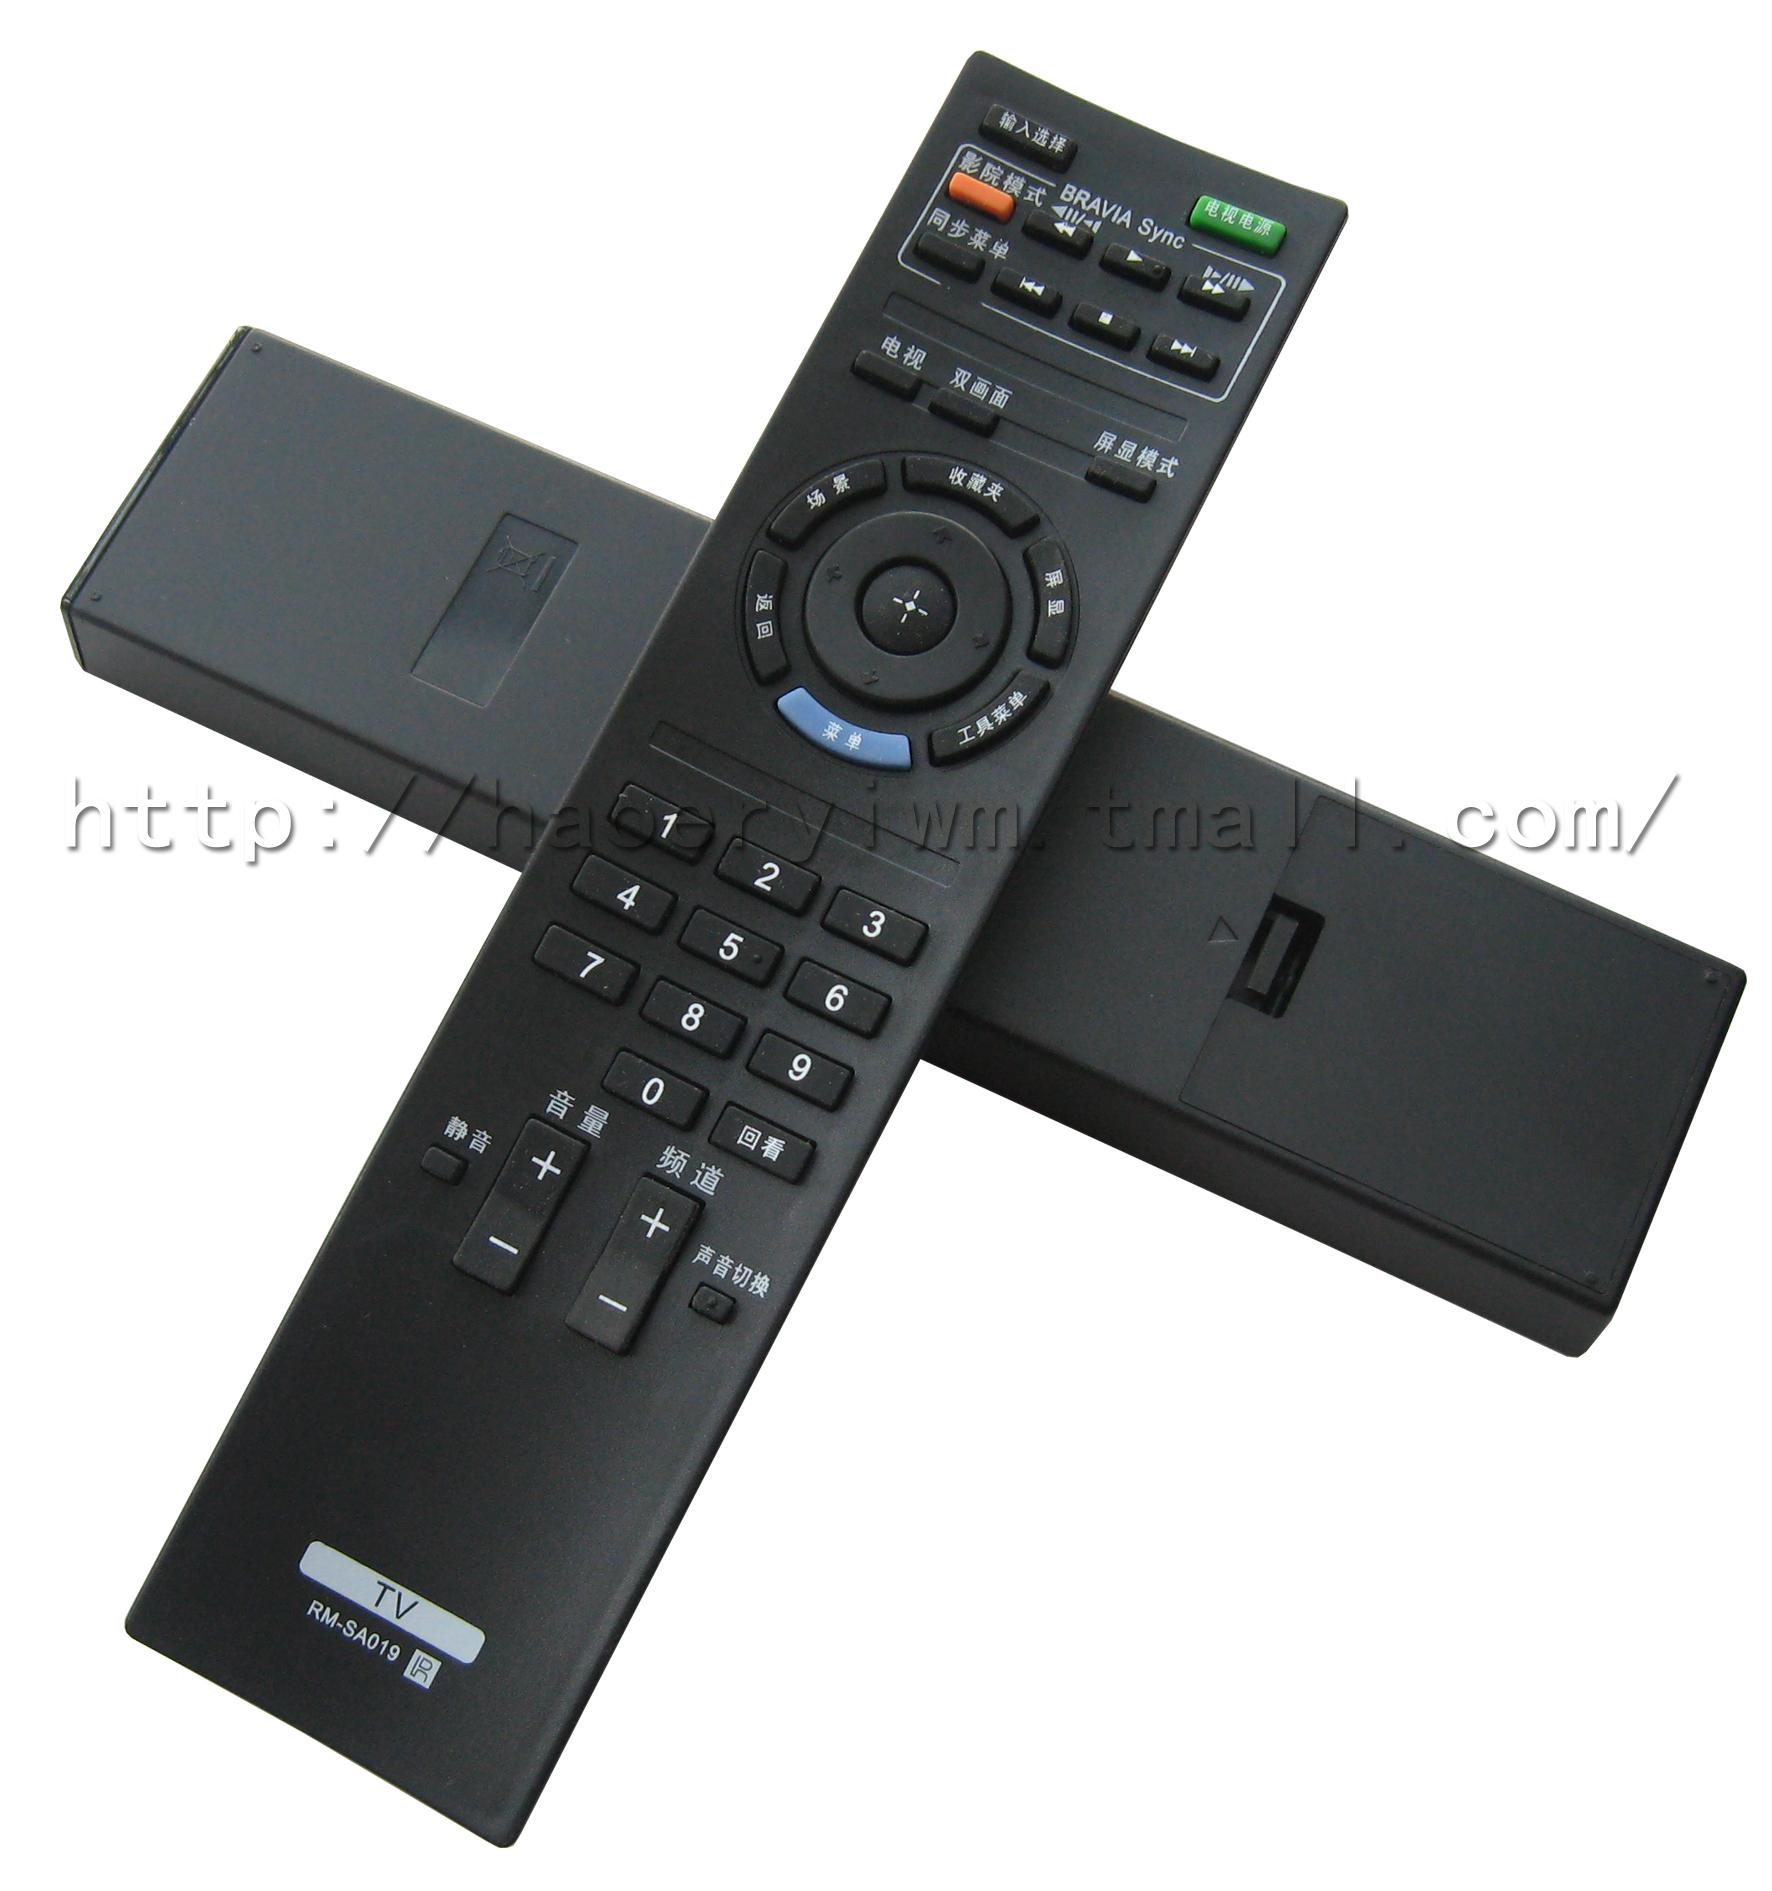 HEALLER Easy to Sony Remote Control RM-SA019 Sony Television 40/46 Ex400 Sony Remote Control